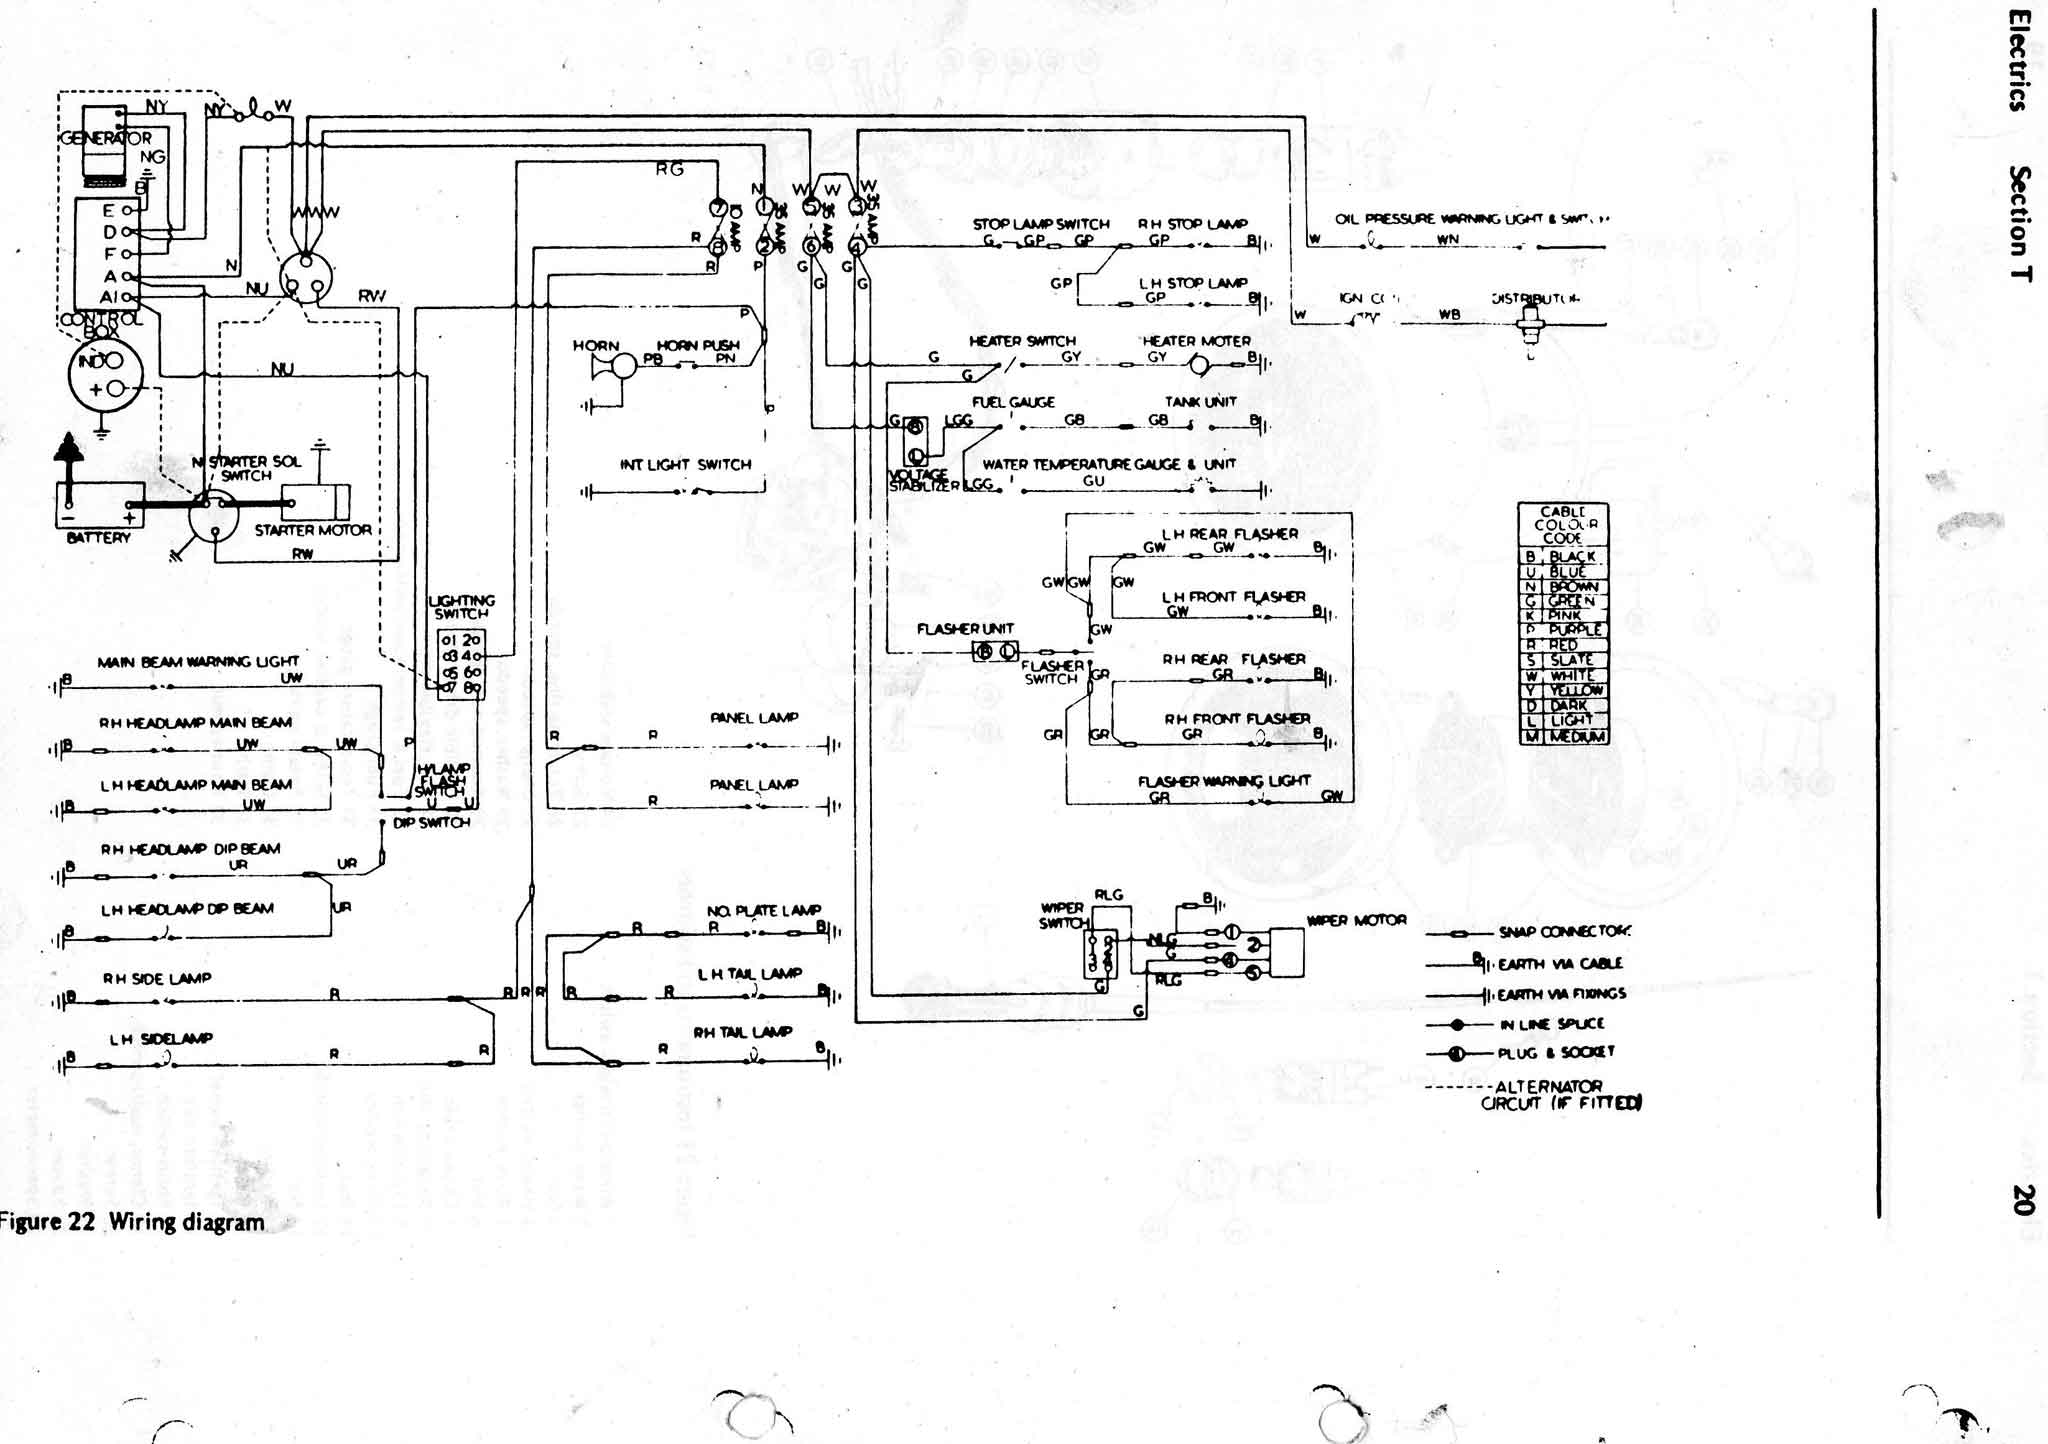 Reliant Spares Wiring Diagrams 4g Alternator Diagram Rebel